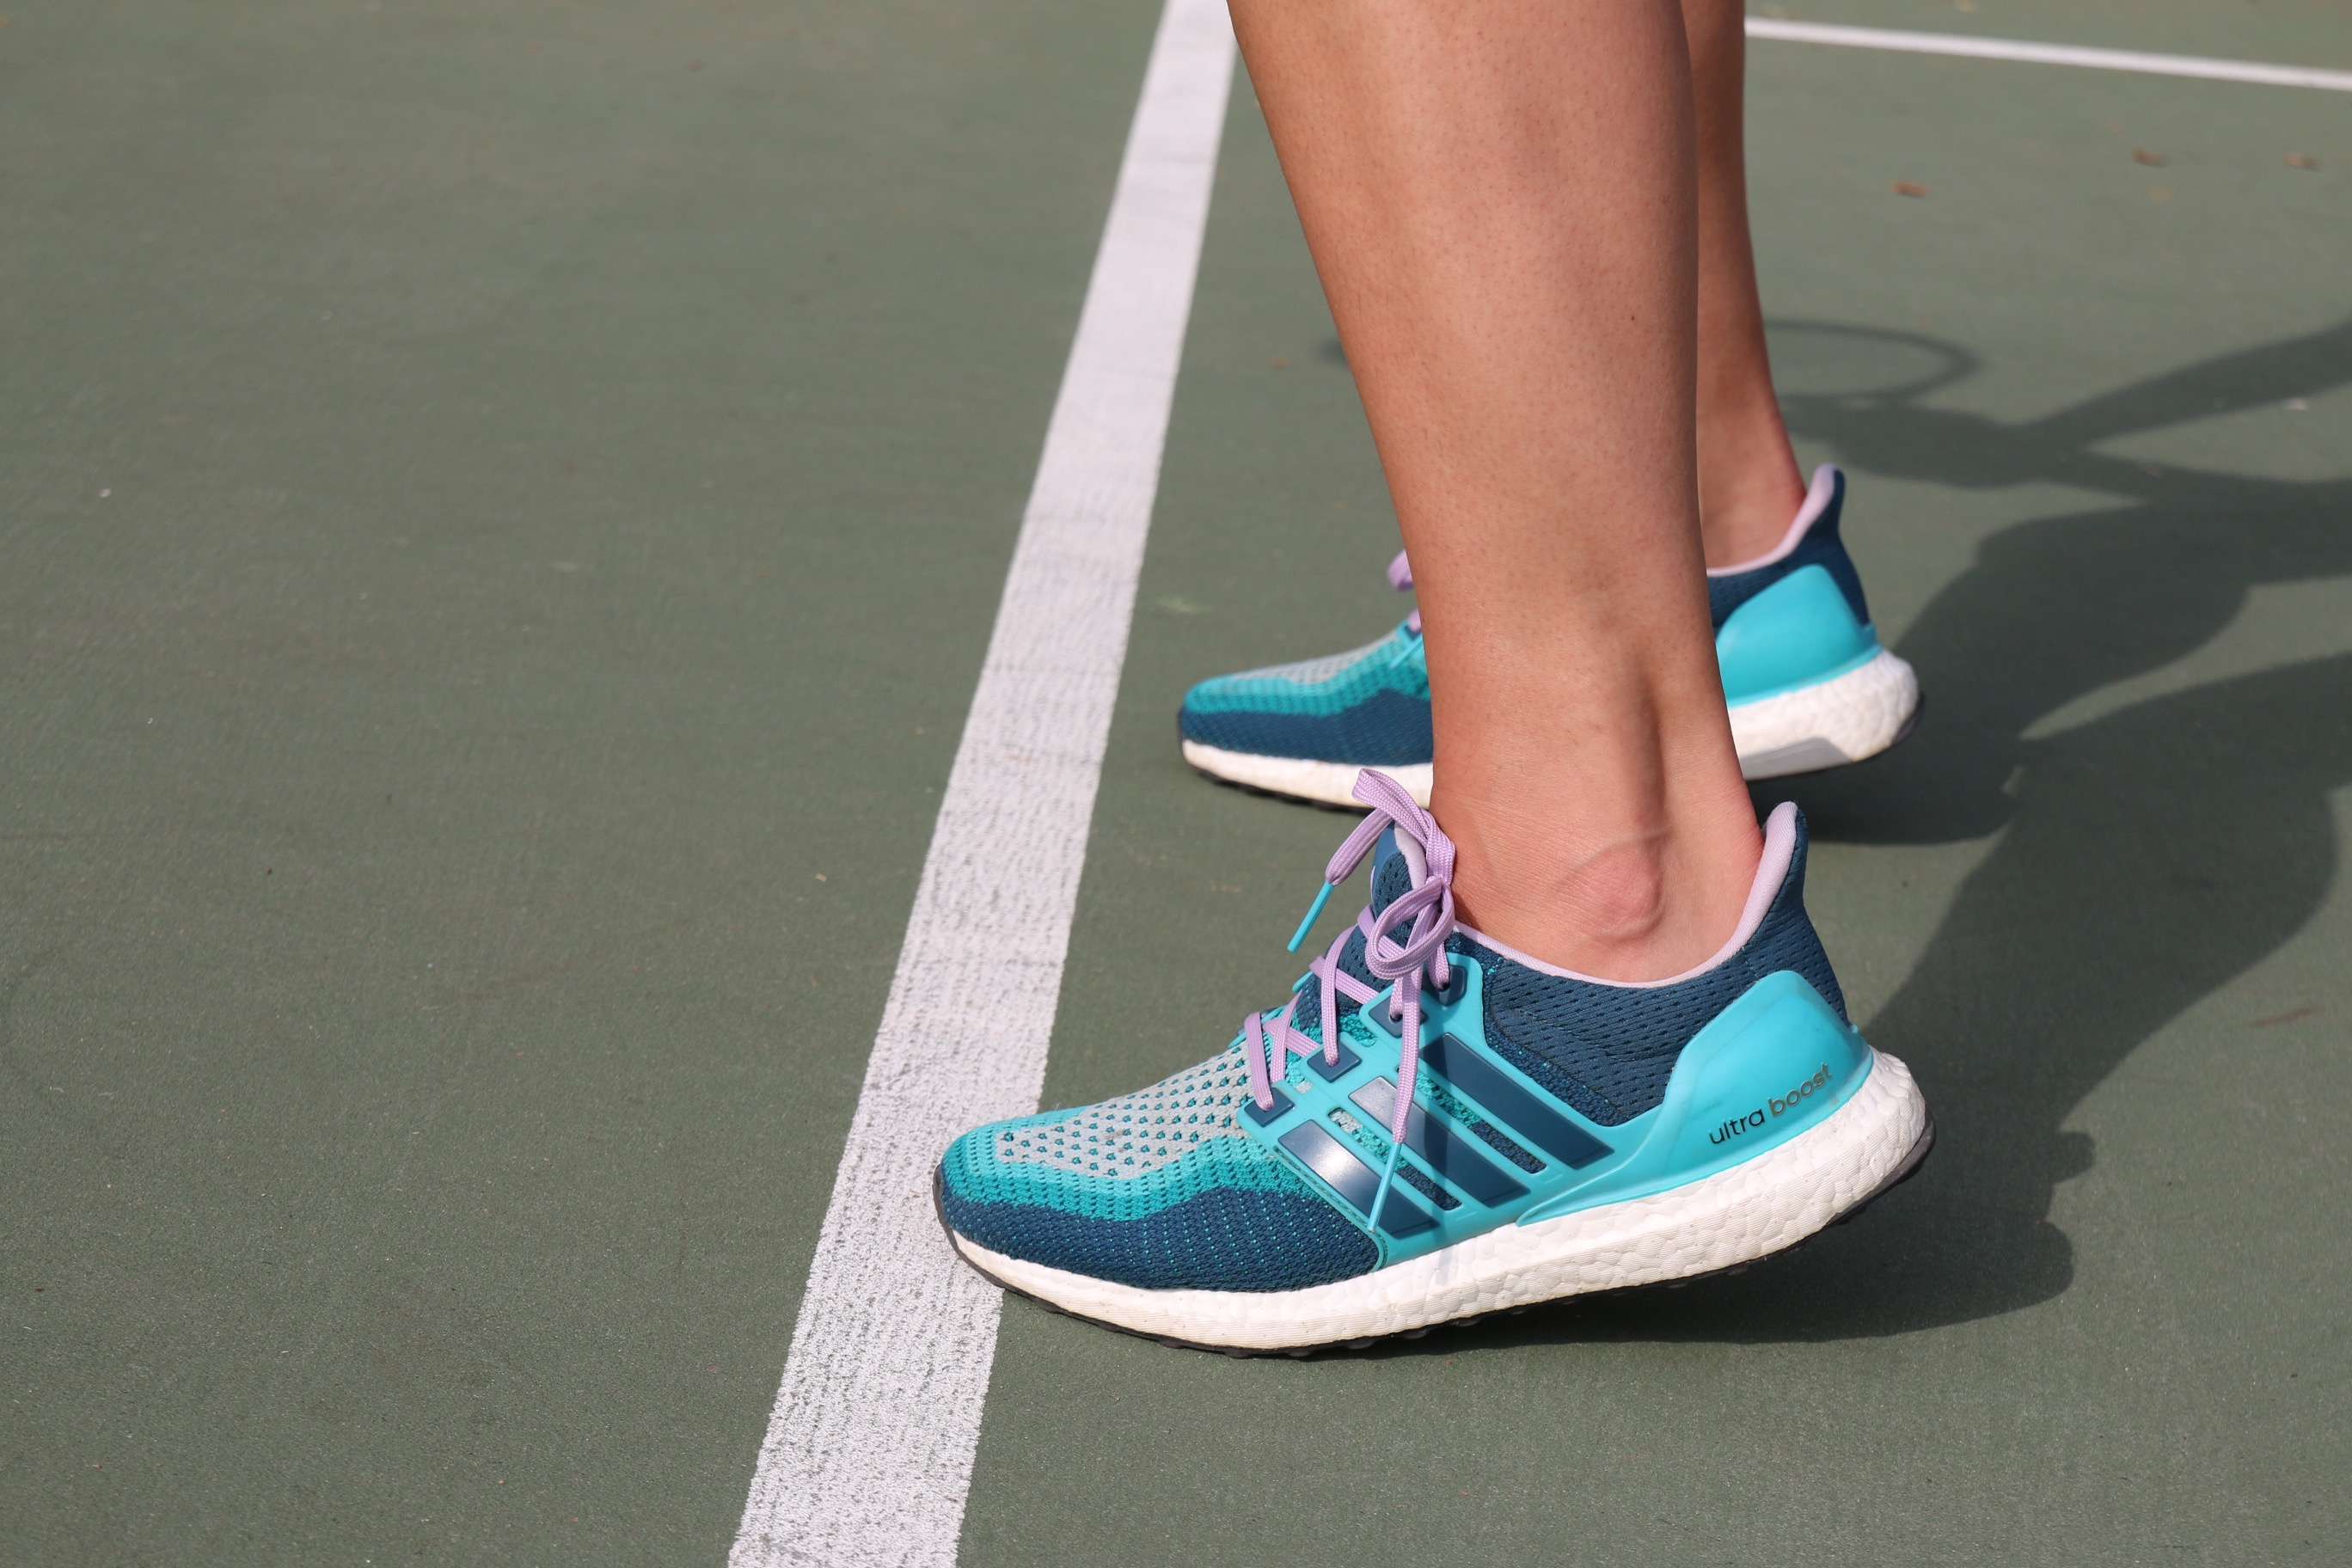 Tennis Tips - Stay on Toes